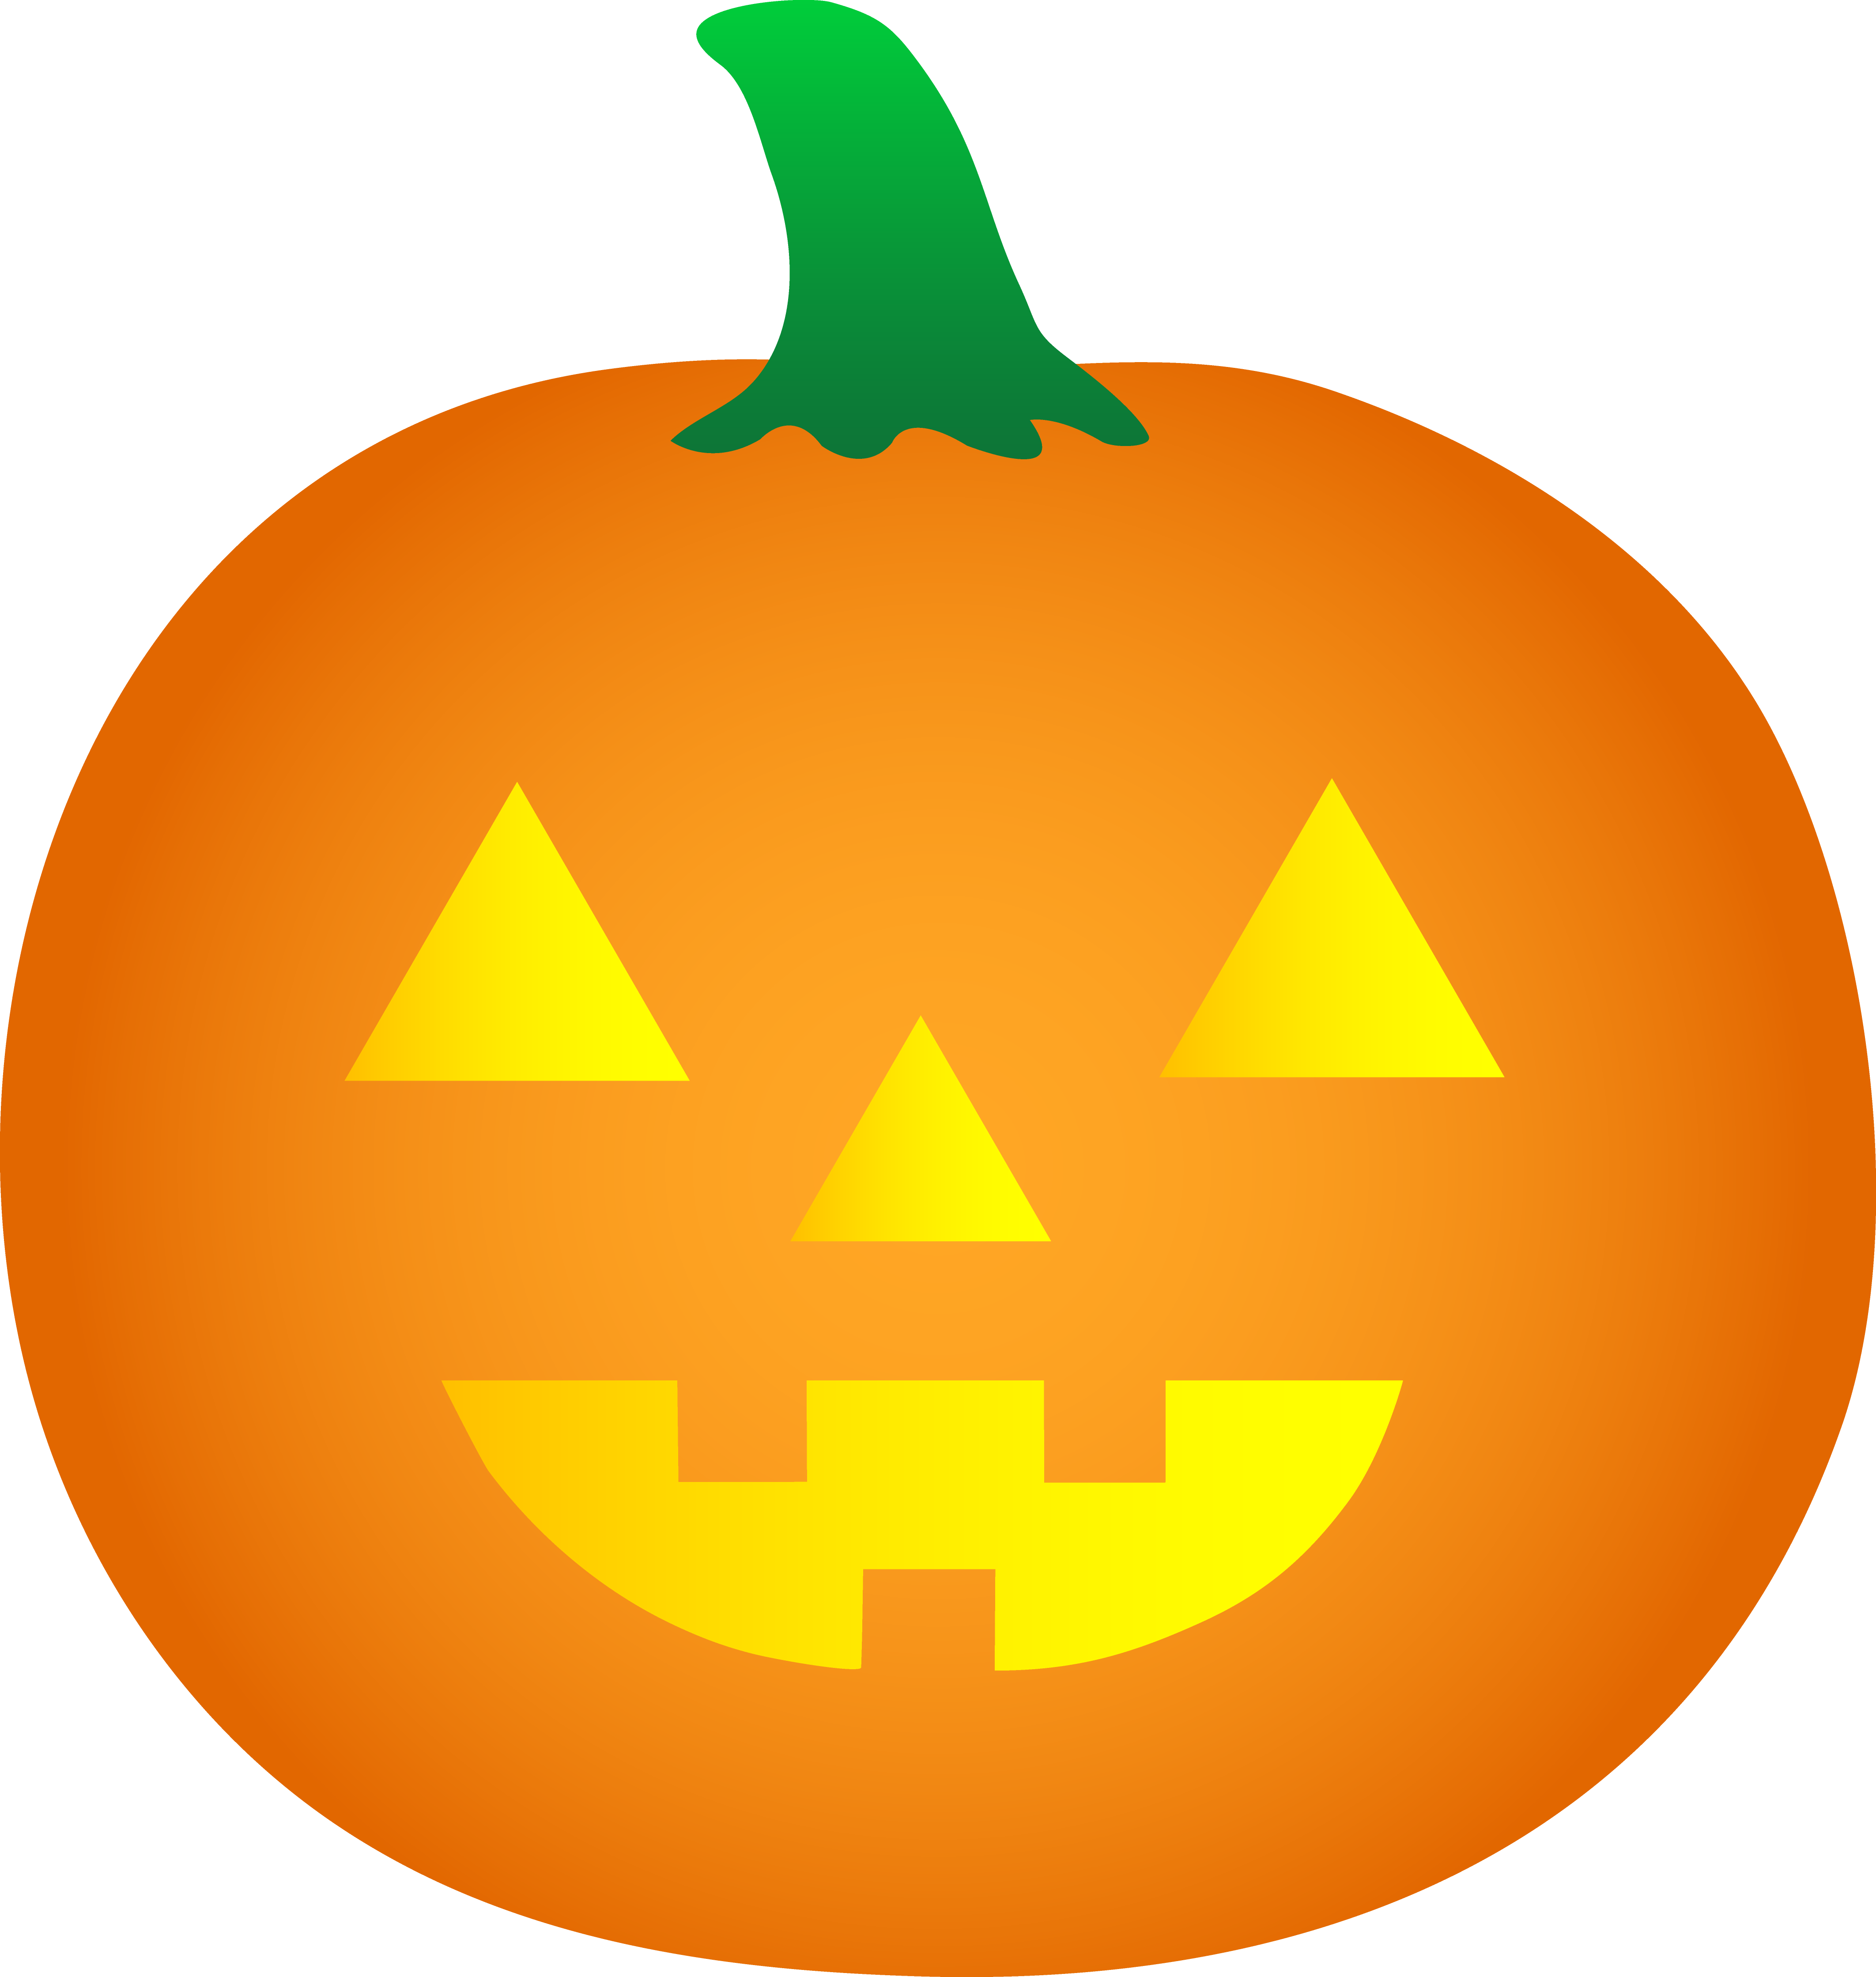 Happy Pumpkin Image PNG Image